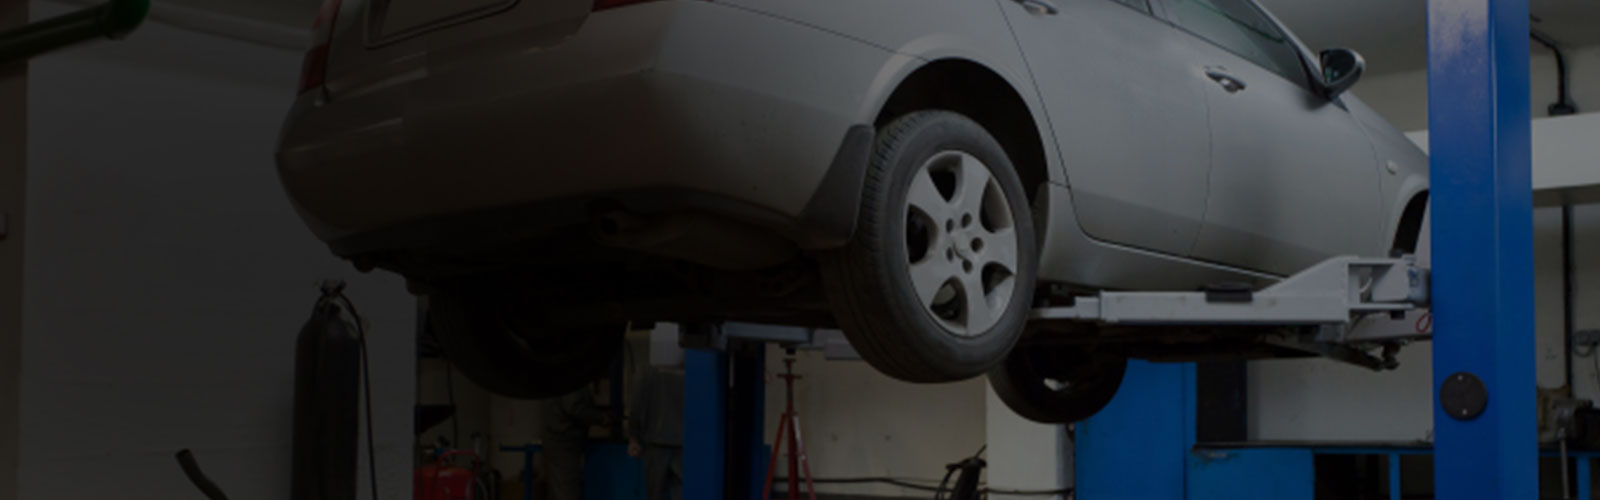 Mission Village Auto Care | Services Offered